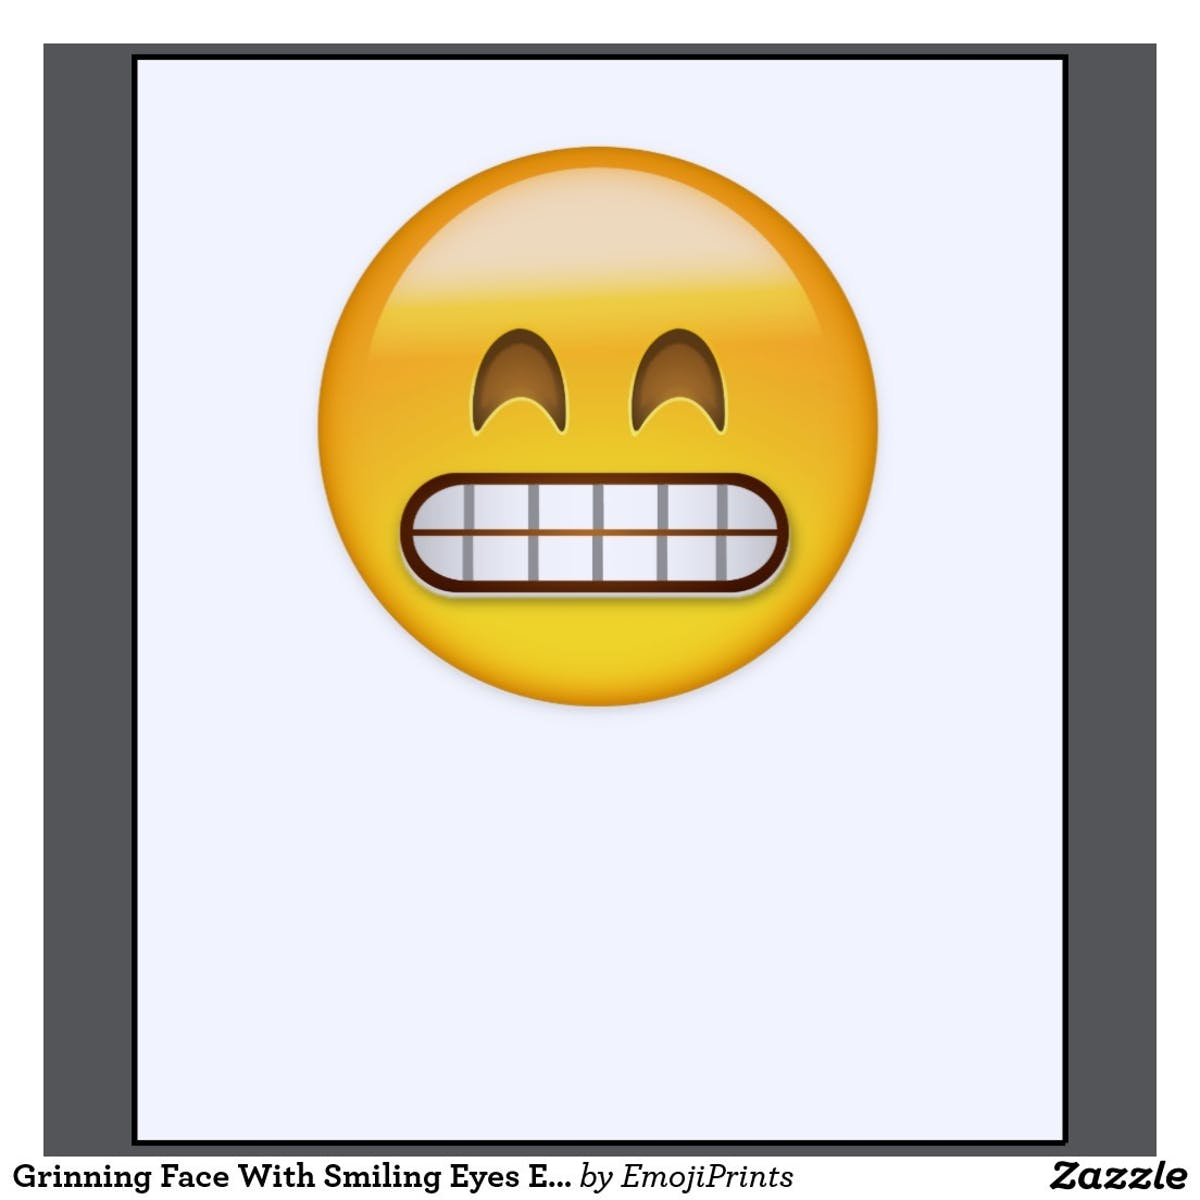 Researchers Find That Emojis Are Interpreted Differently Depending